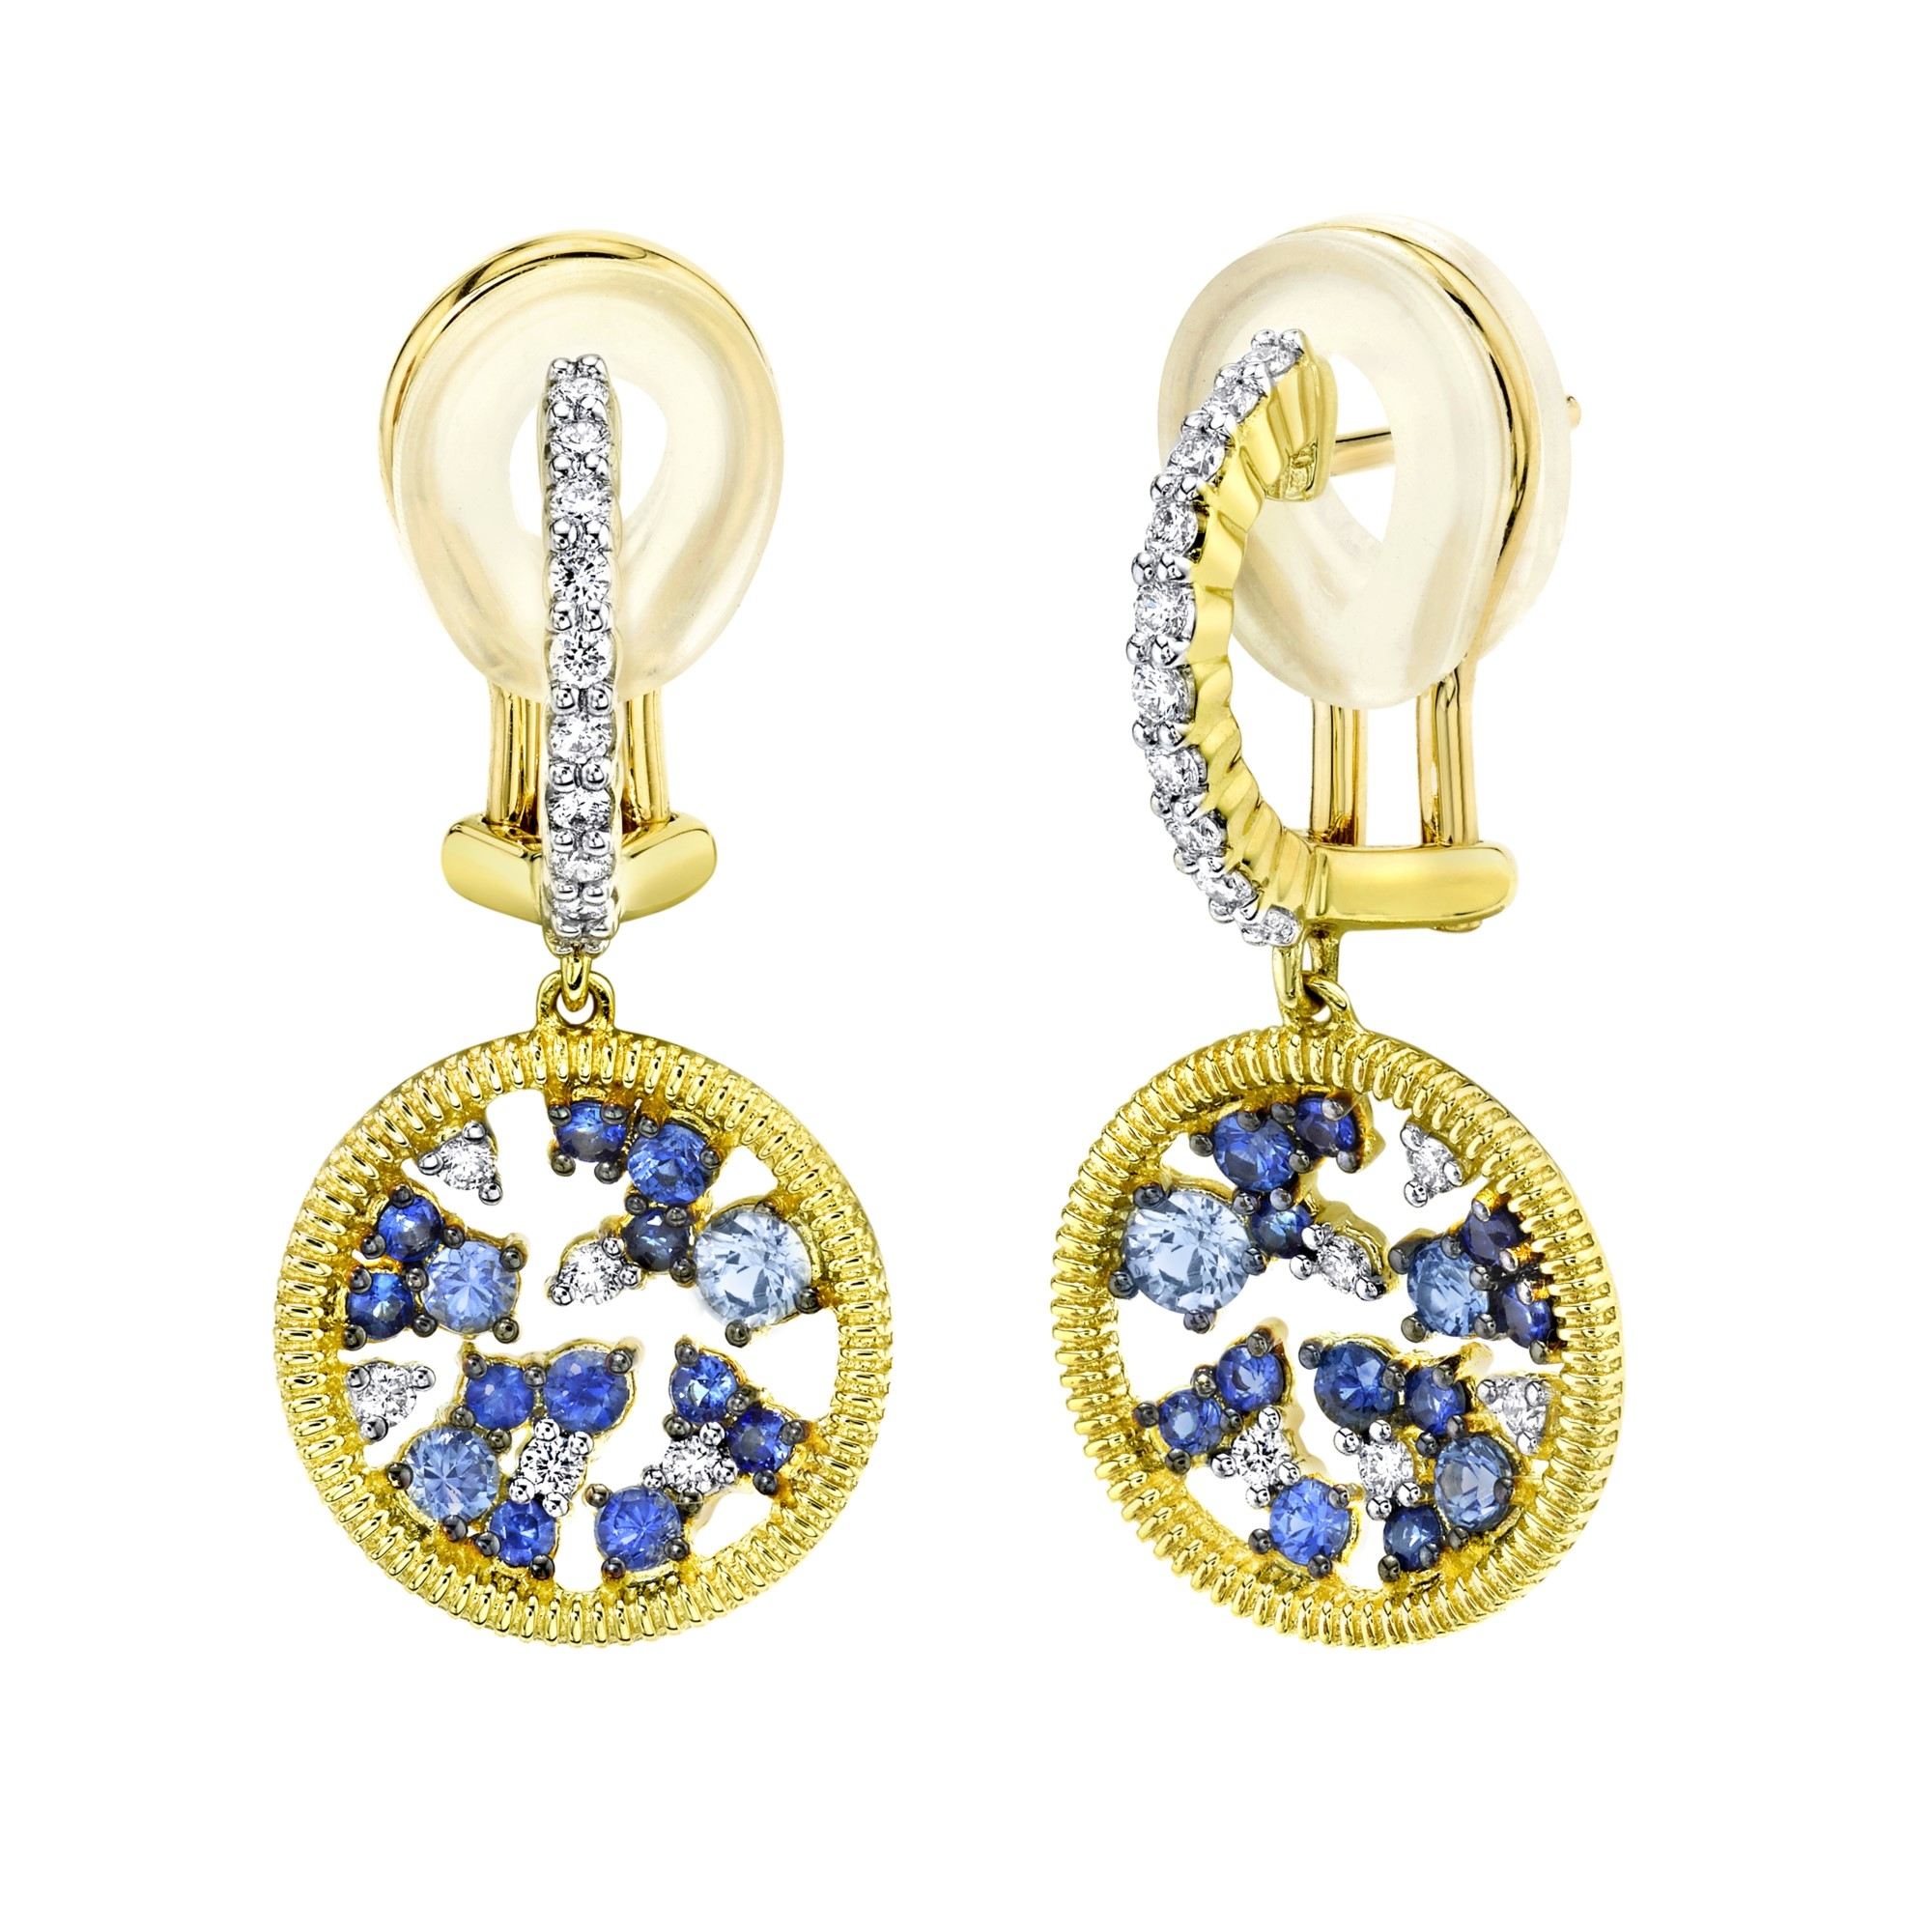 Sloane Street 18K Yellow Gold .30cts  Diamonds Gold Earrings with Stones E246T-GBSBR-WDCB-Y